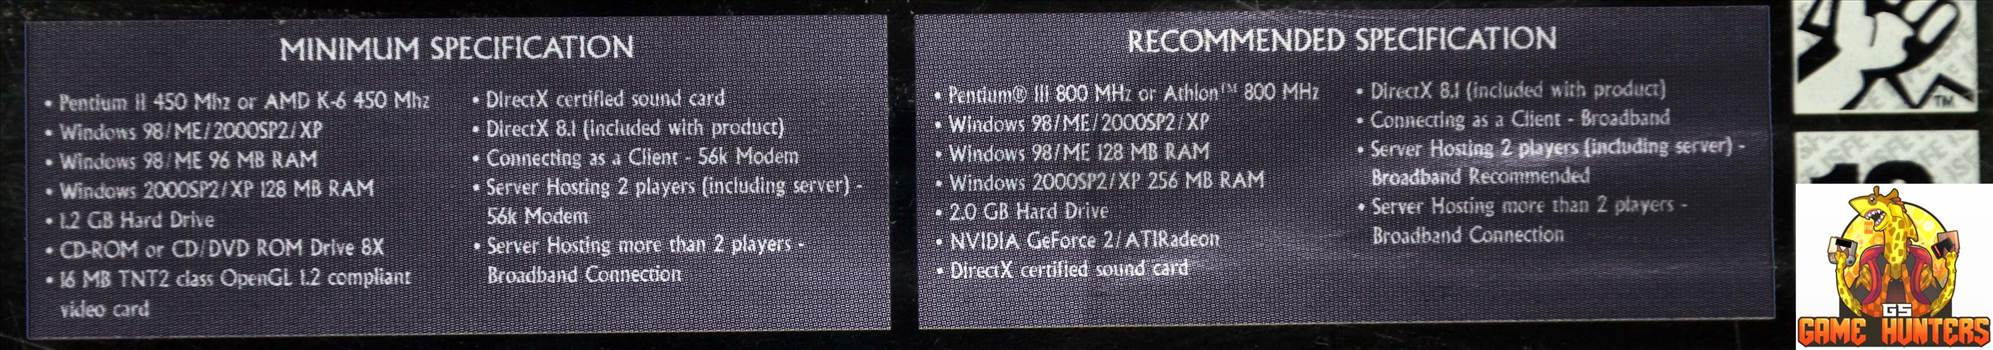 Neverwinter Nights System Requirements.jpg by GSGAMEHUNTERS